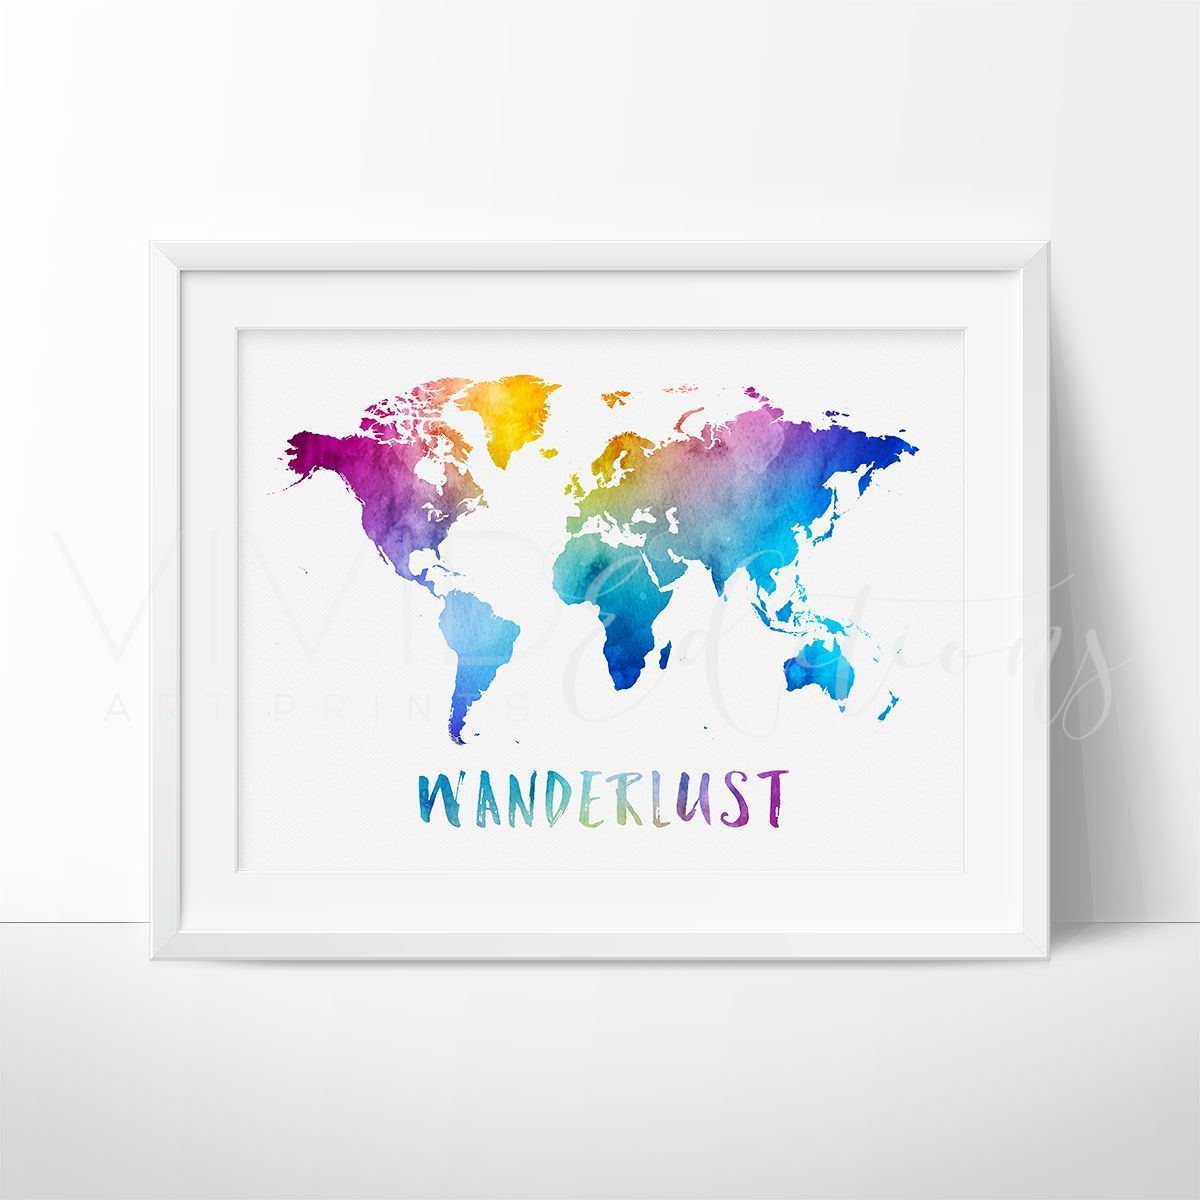 Wanderlust travel quote world map watercolor art print wanderlust wanderlust travel quote world map watercolor art print gumiabroncs Choice Image